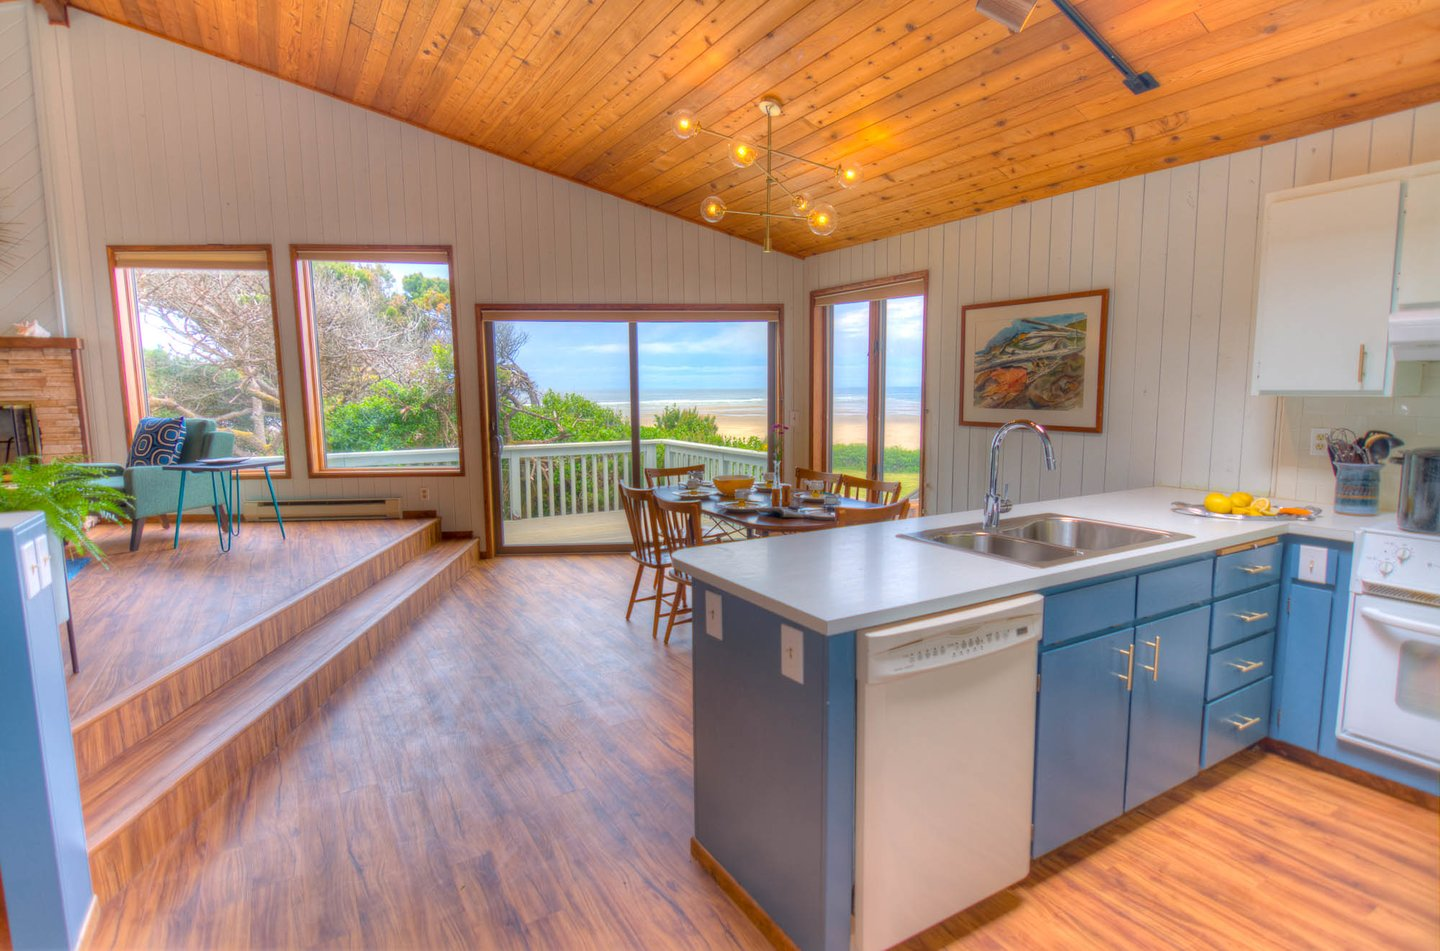 Bright and cheery kitchen has all the amenities.